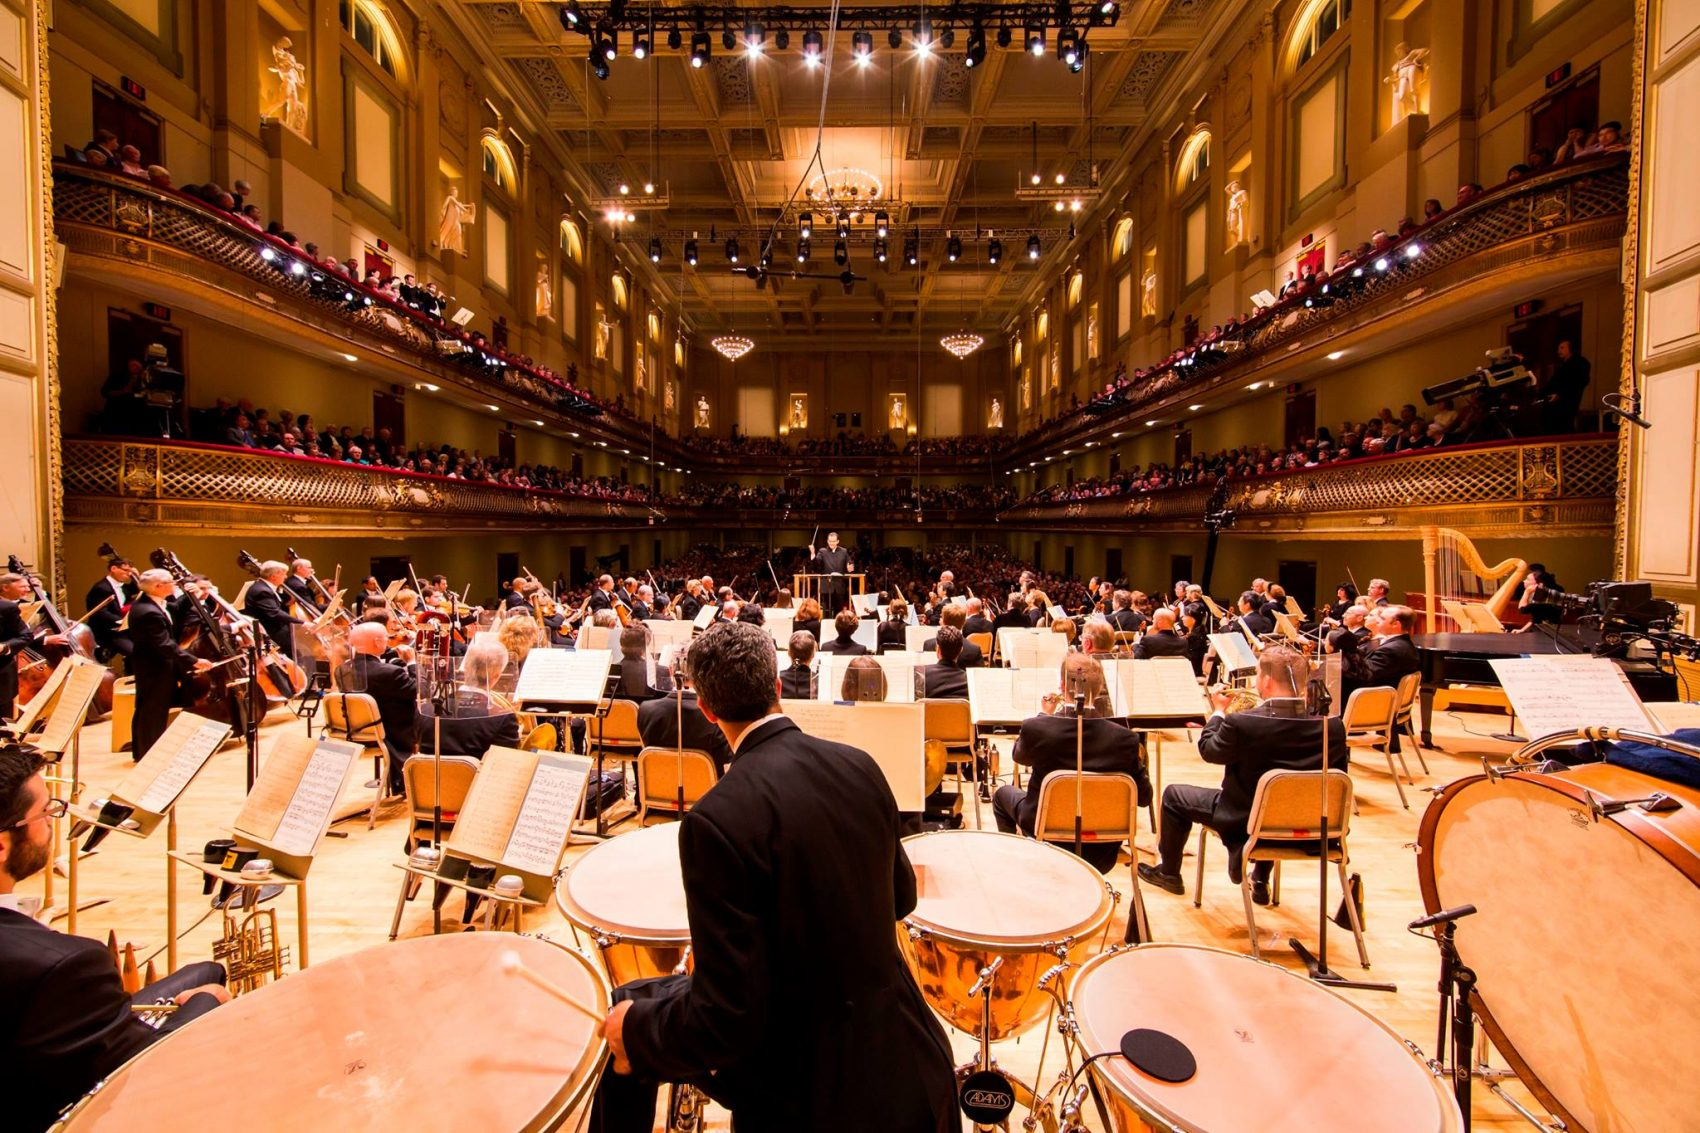 Andris Nelsons and the Boston Symphony Orchestra on stage at Symphony Hall. (Courtesy Boston Symphony Orchestra)